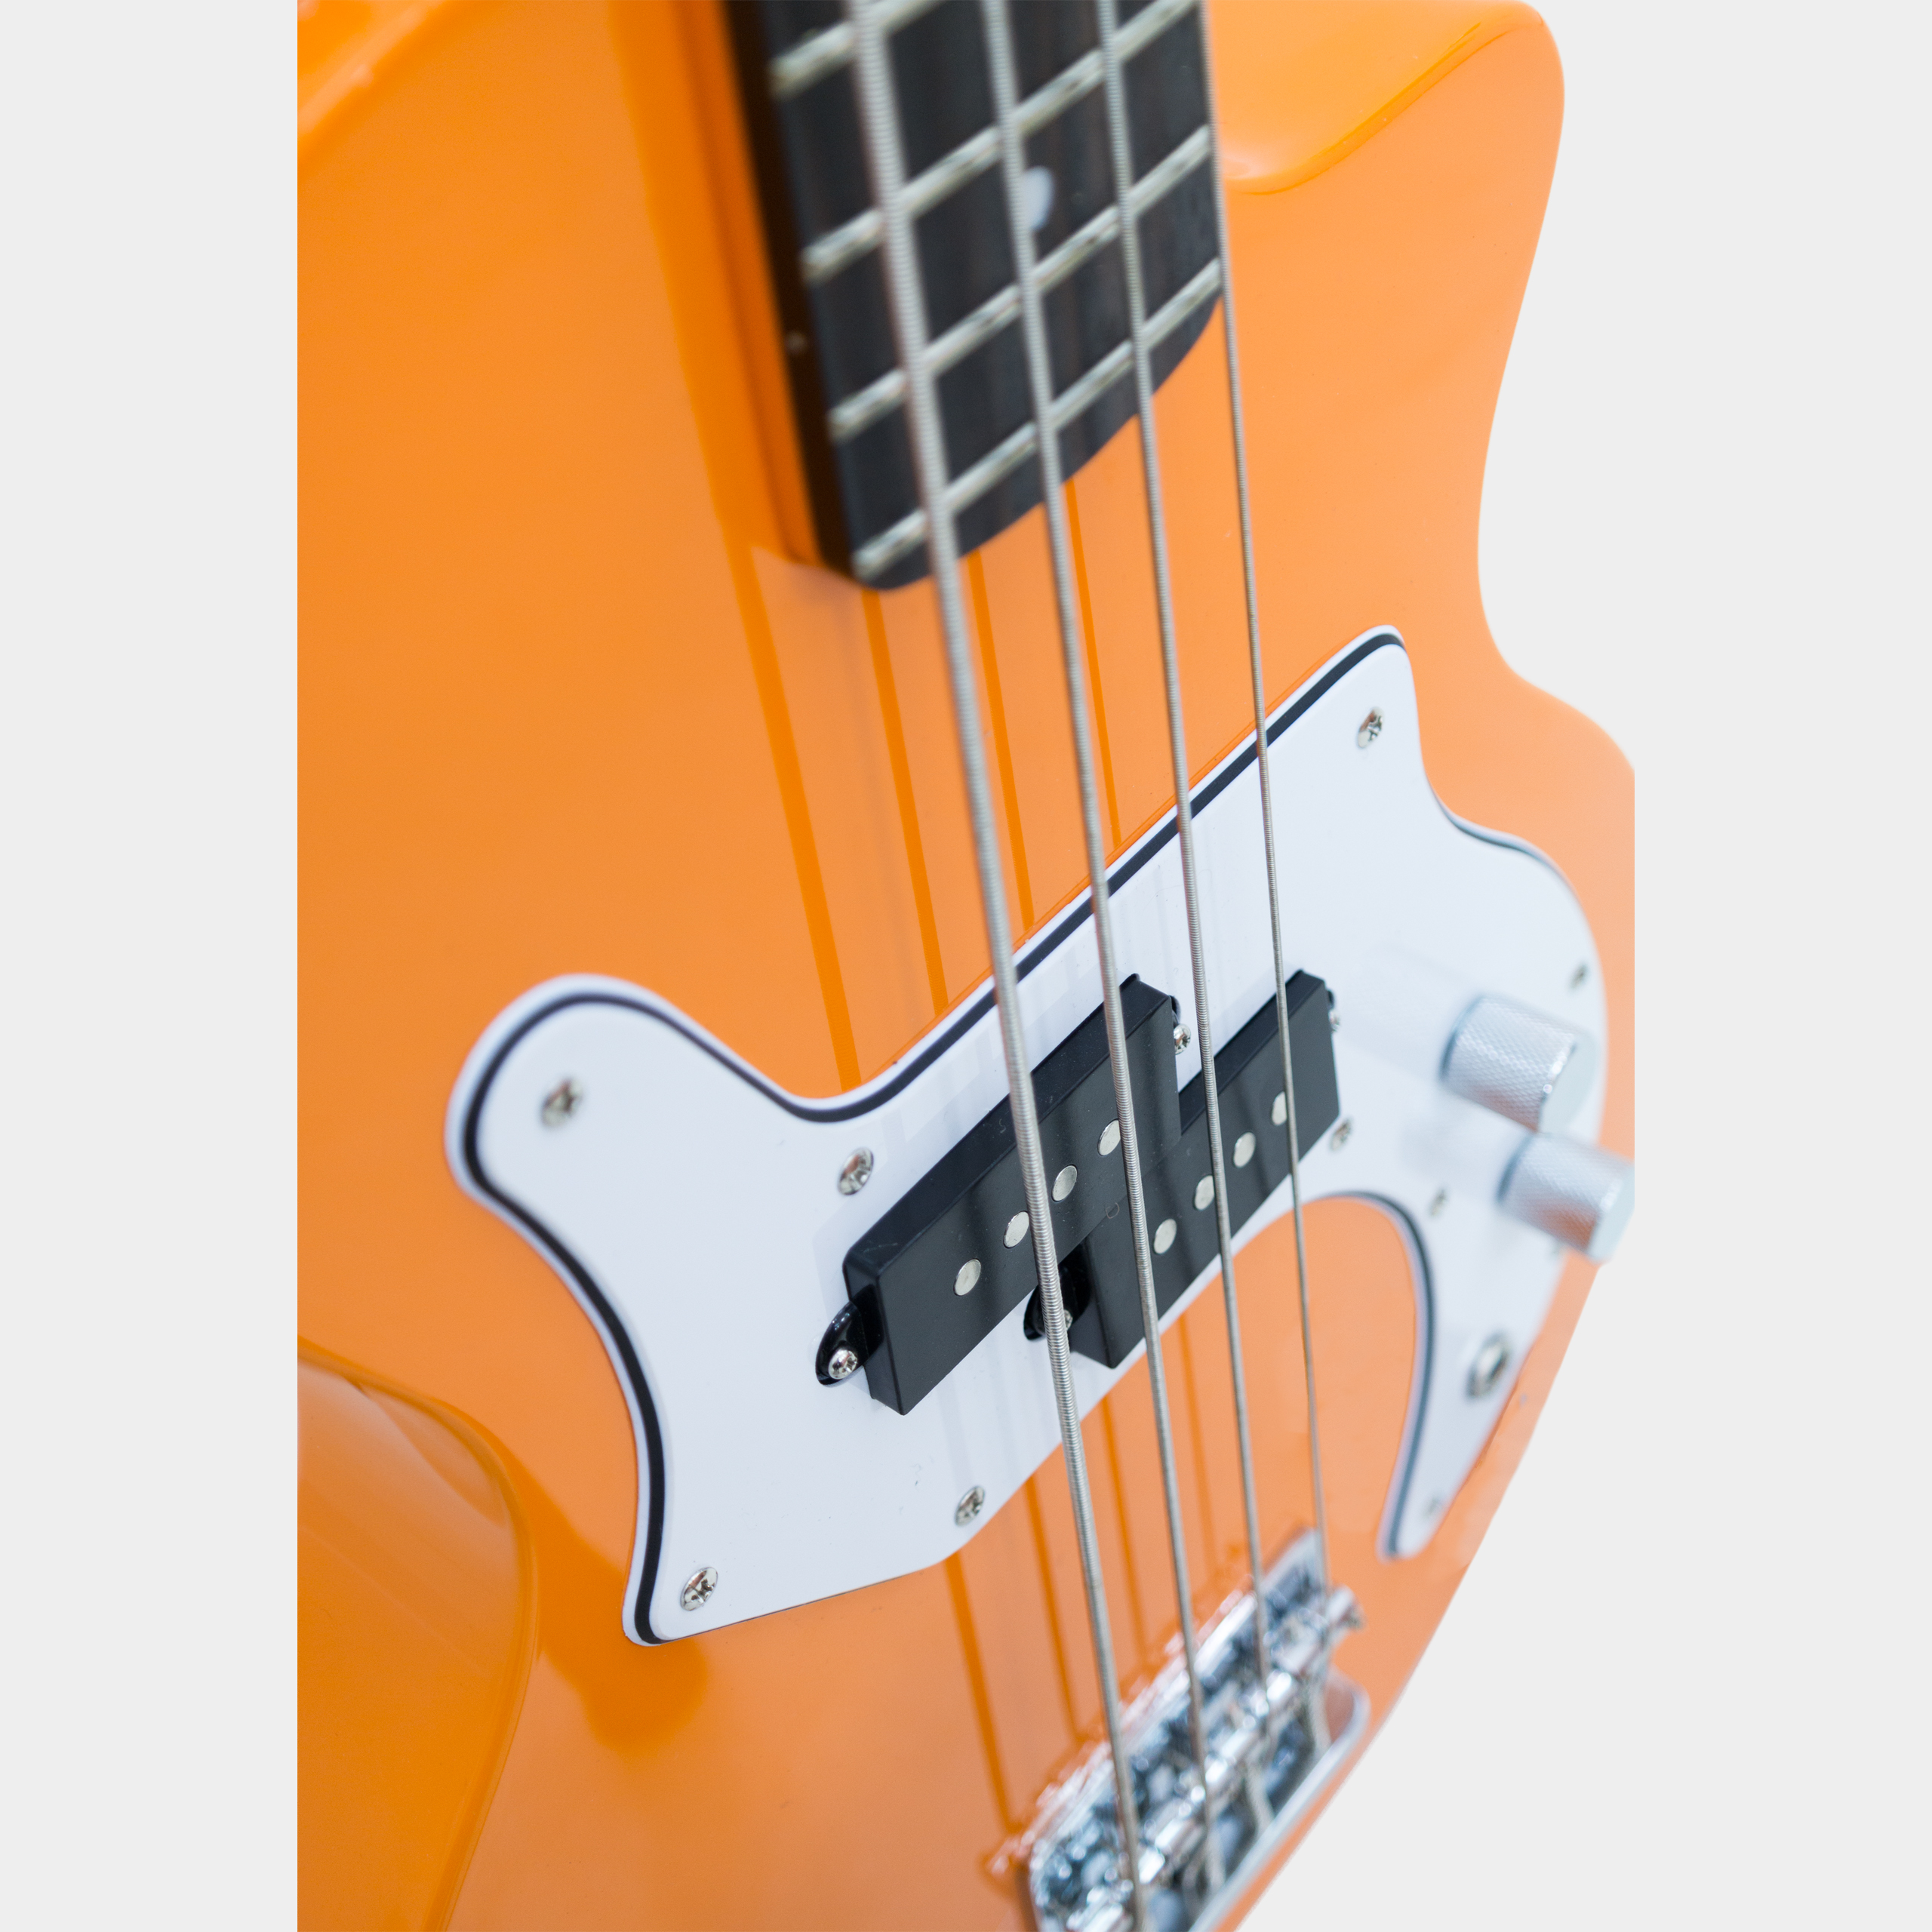 Orange O Bass Orange Tonabnehmer